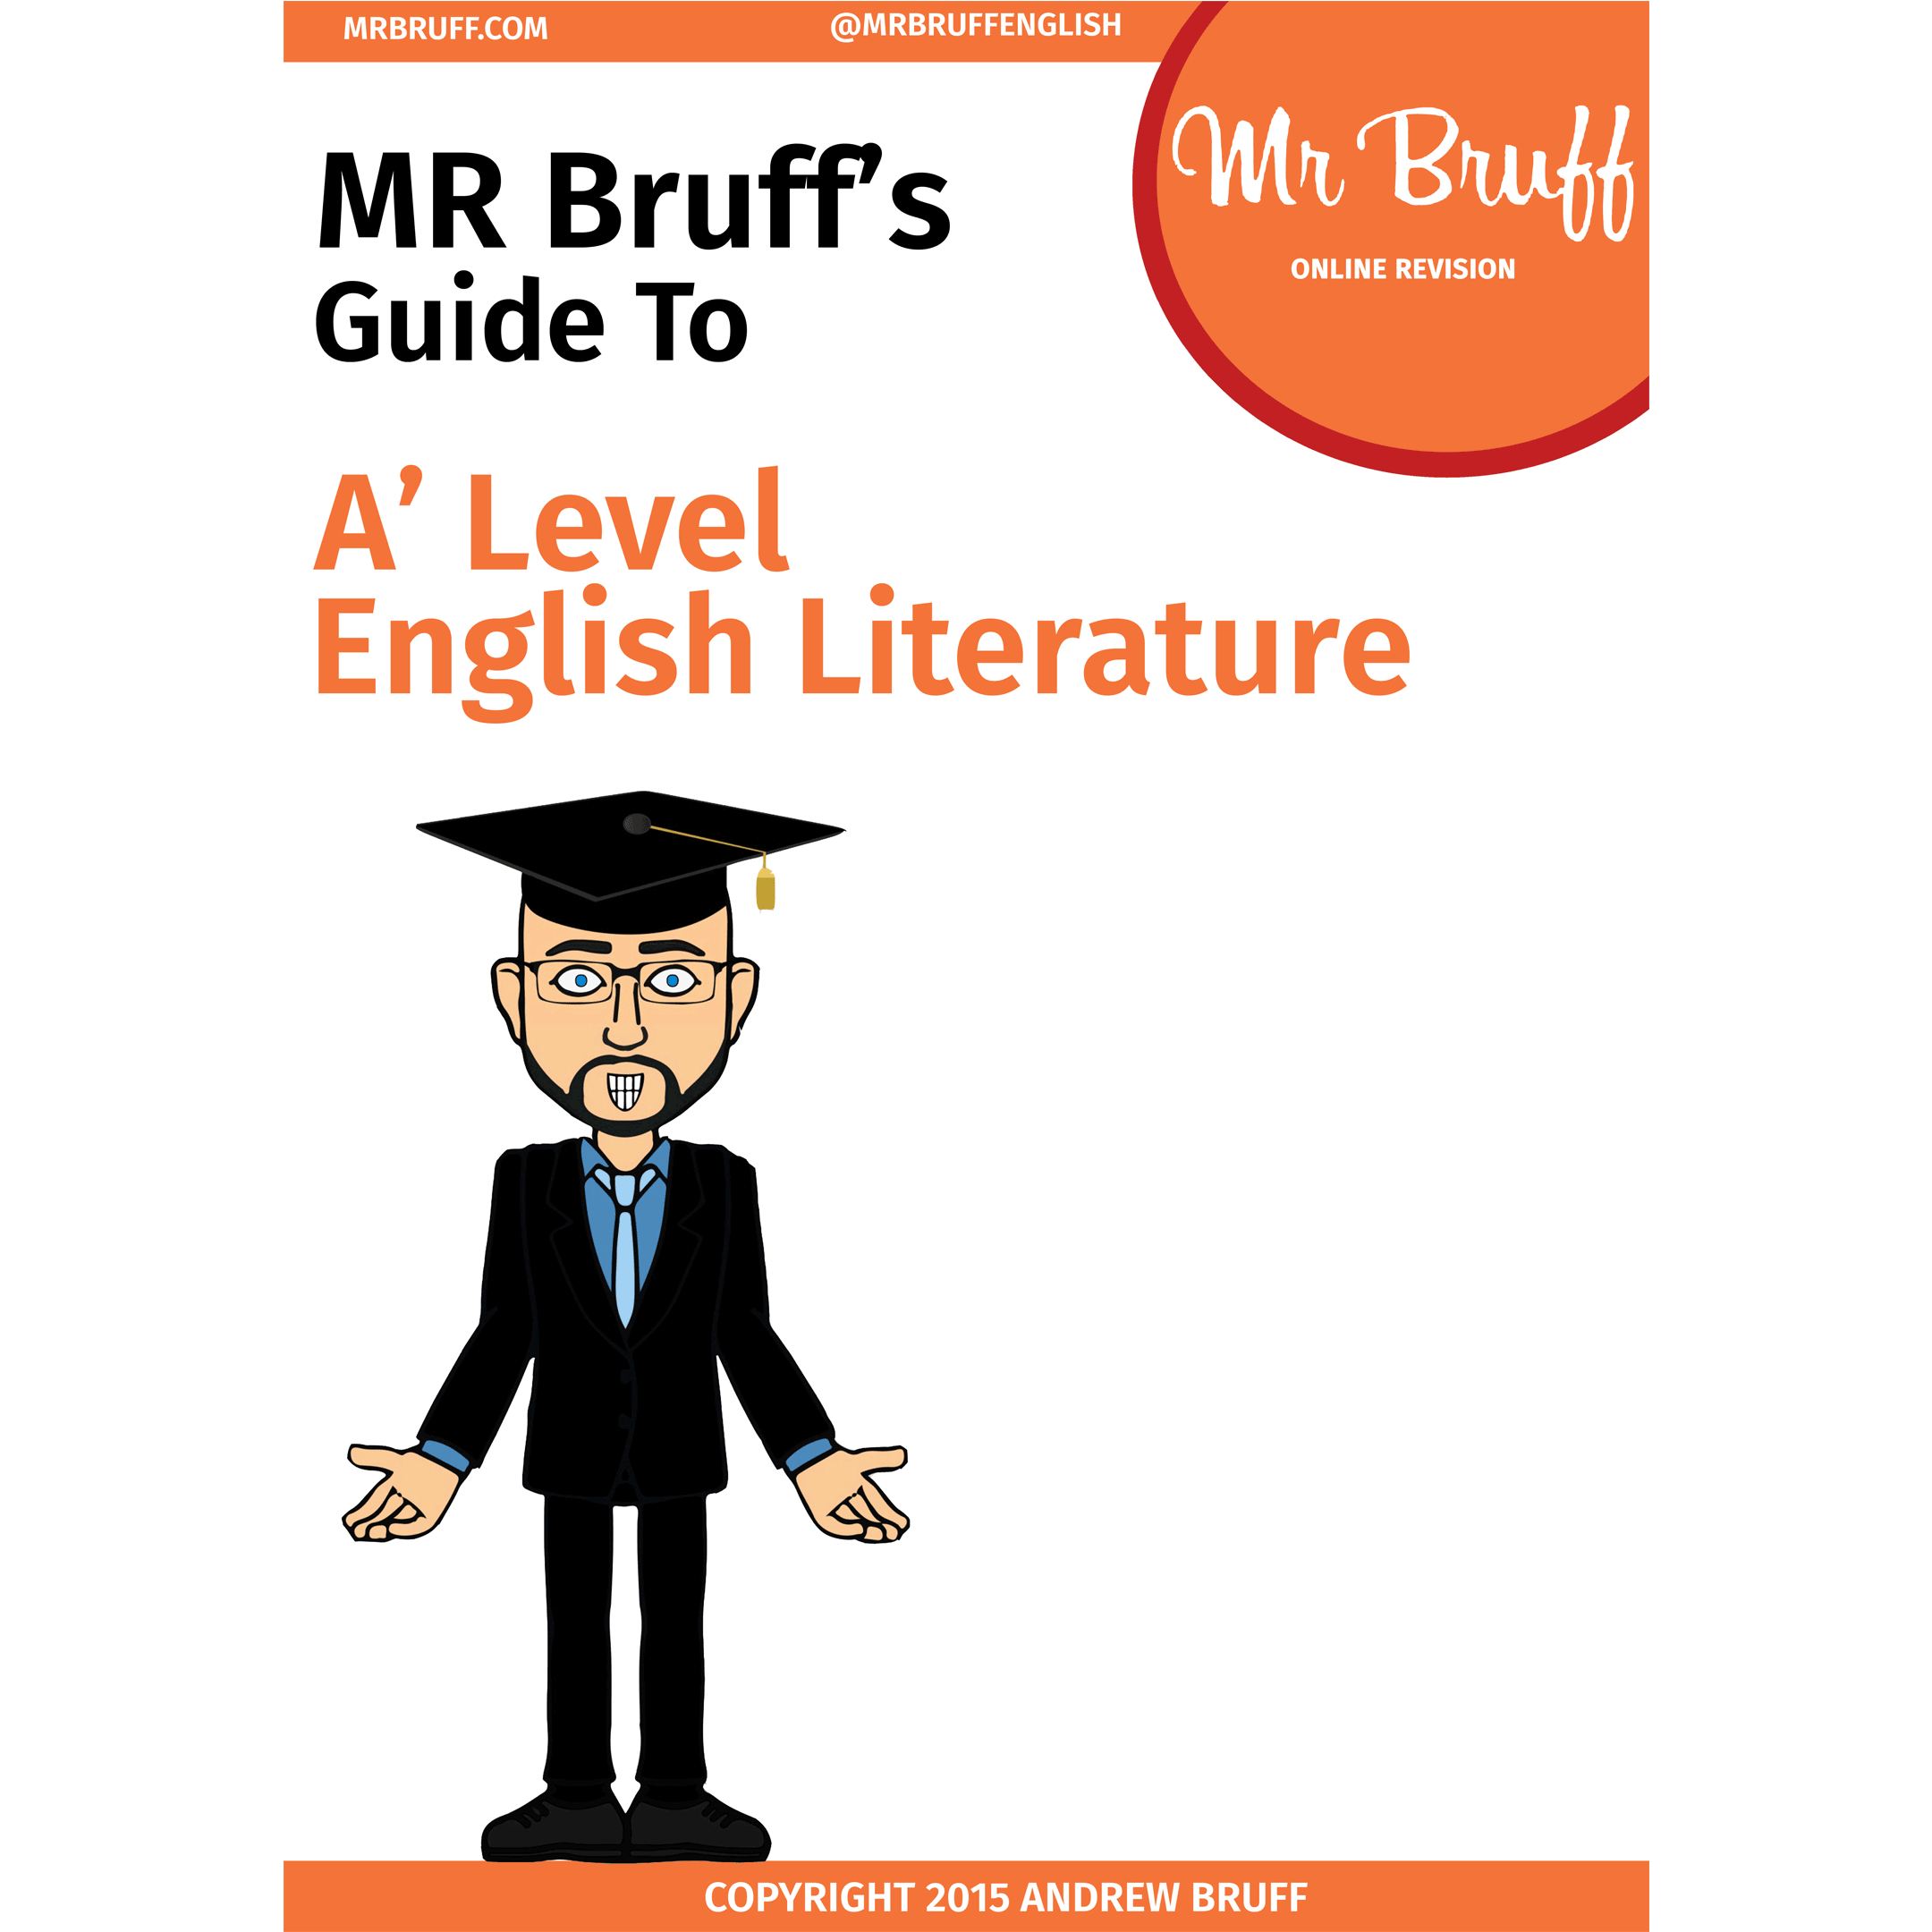 Mr Bruffs Guide to A Level English Literature